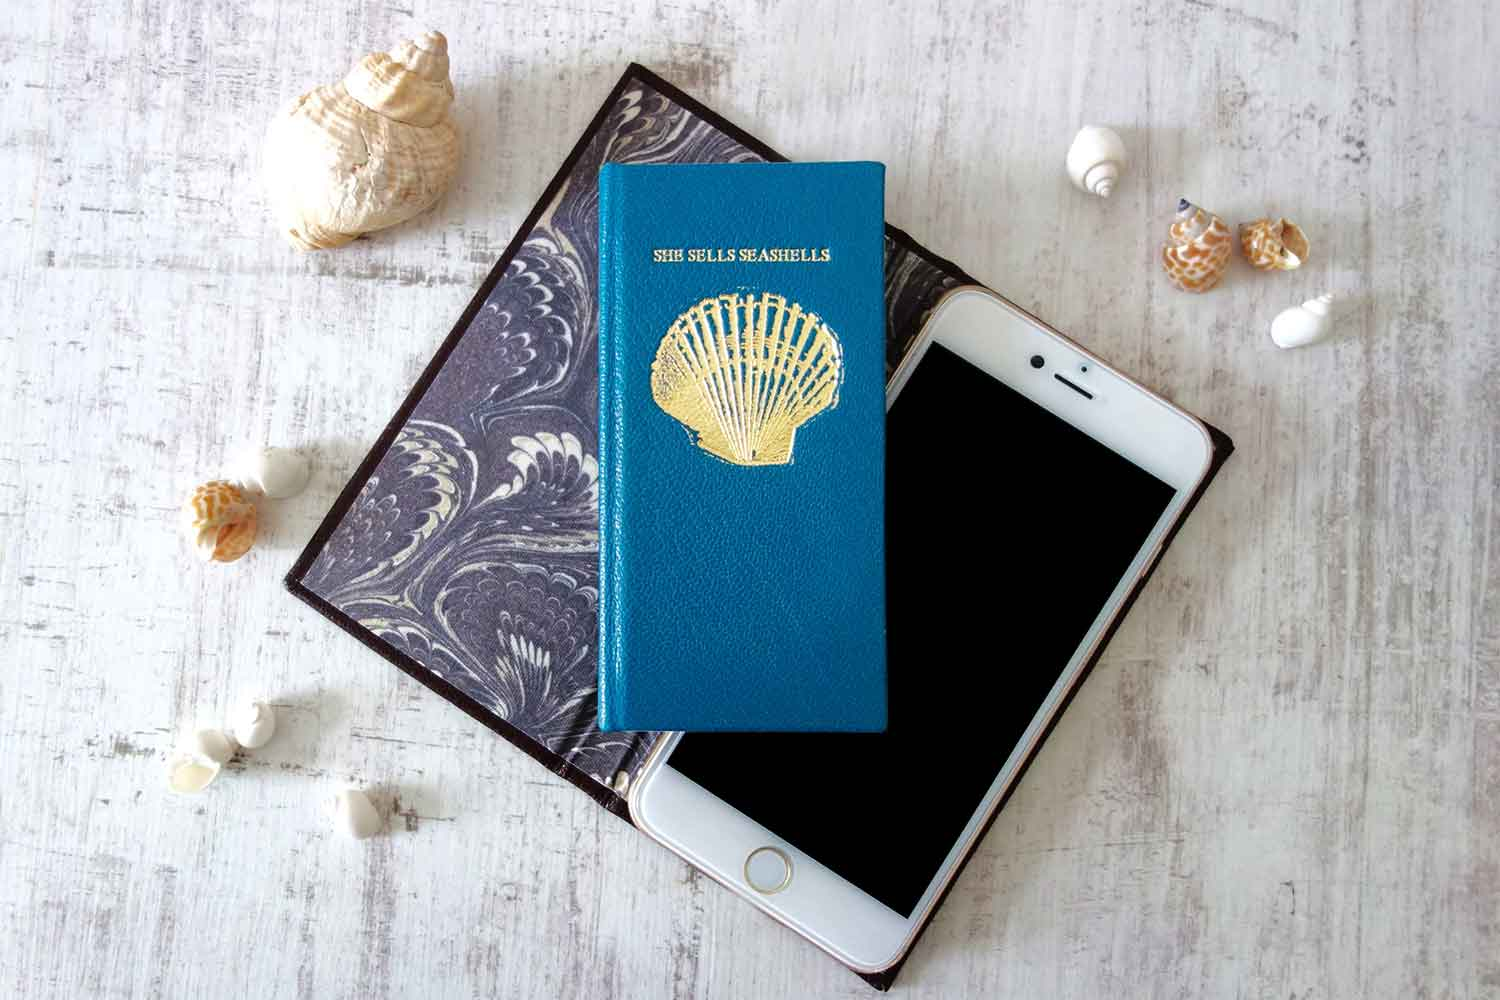 iphone leather book case in blue leather with shell cover picture from Bookshell Bindery